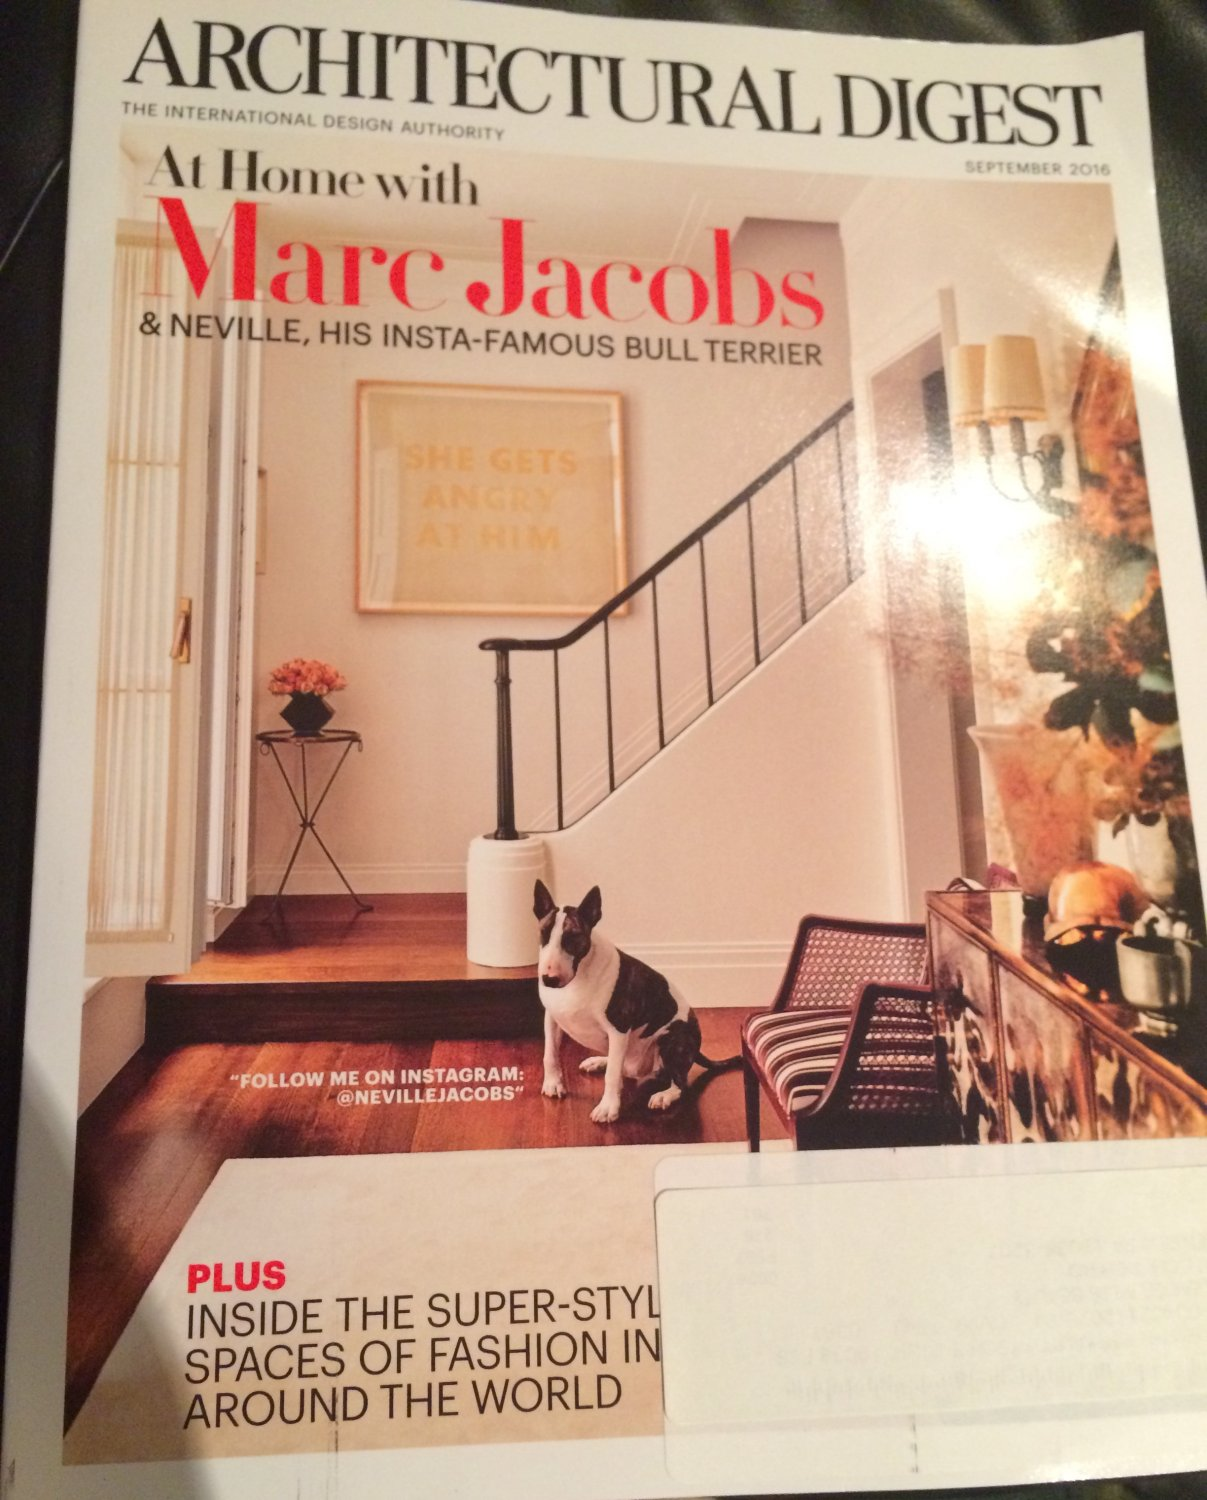 Architectural Digest Magazine September 2016 Marc Jacobs